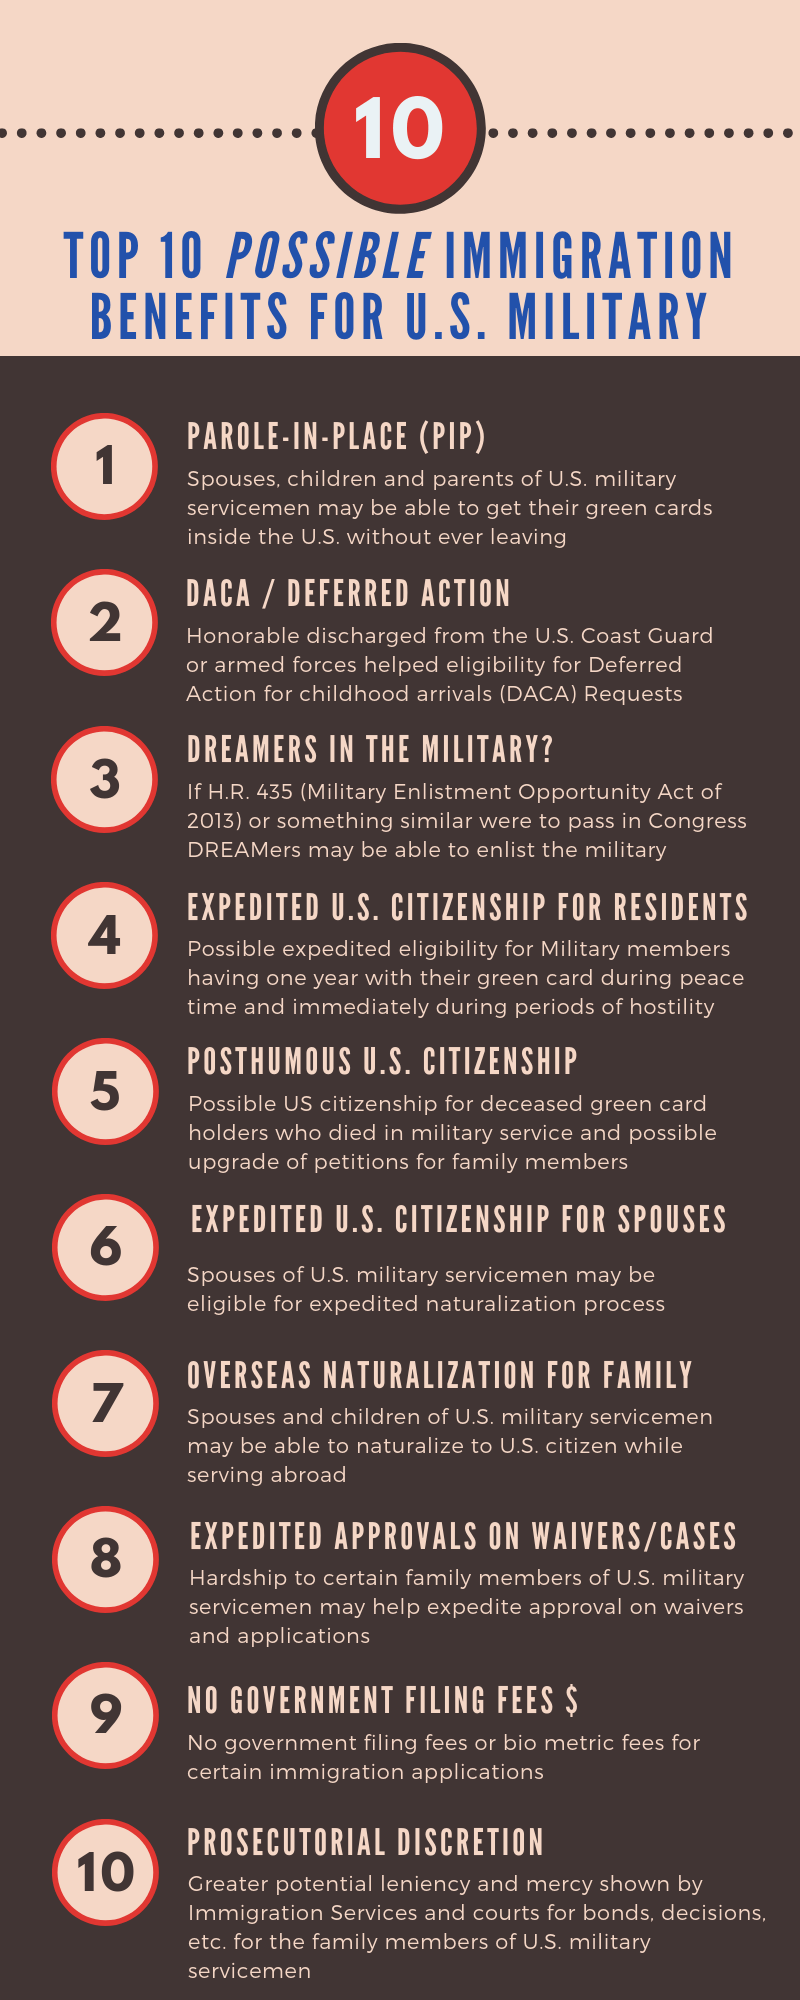 Top 10 Possible immigration benefits for u.s. military